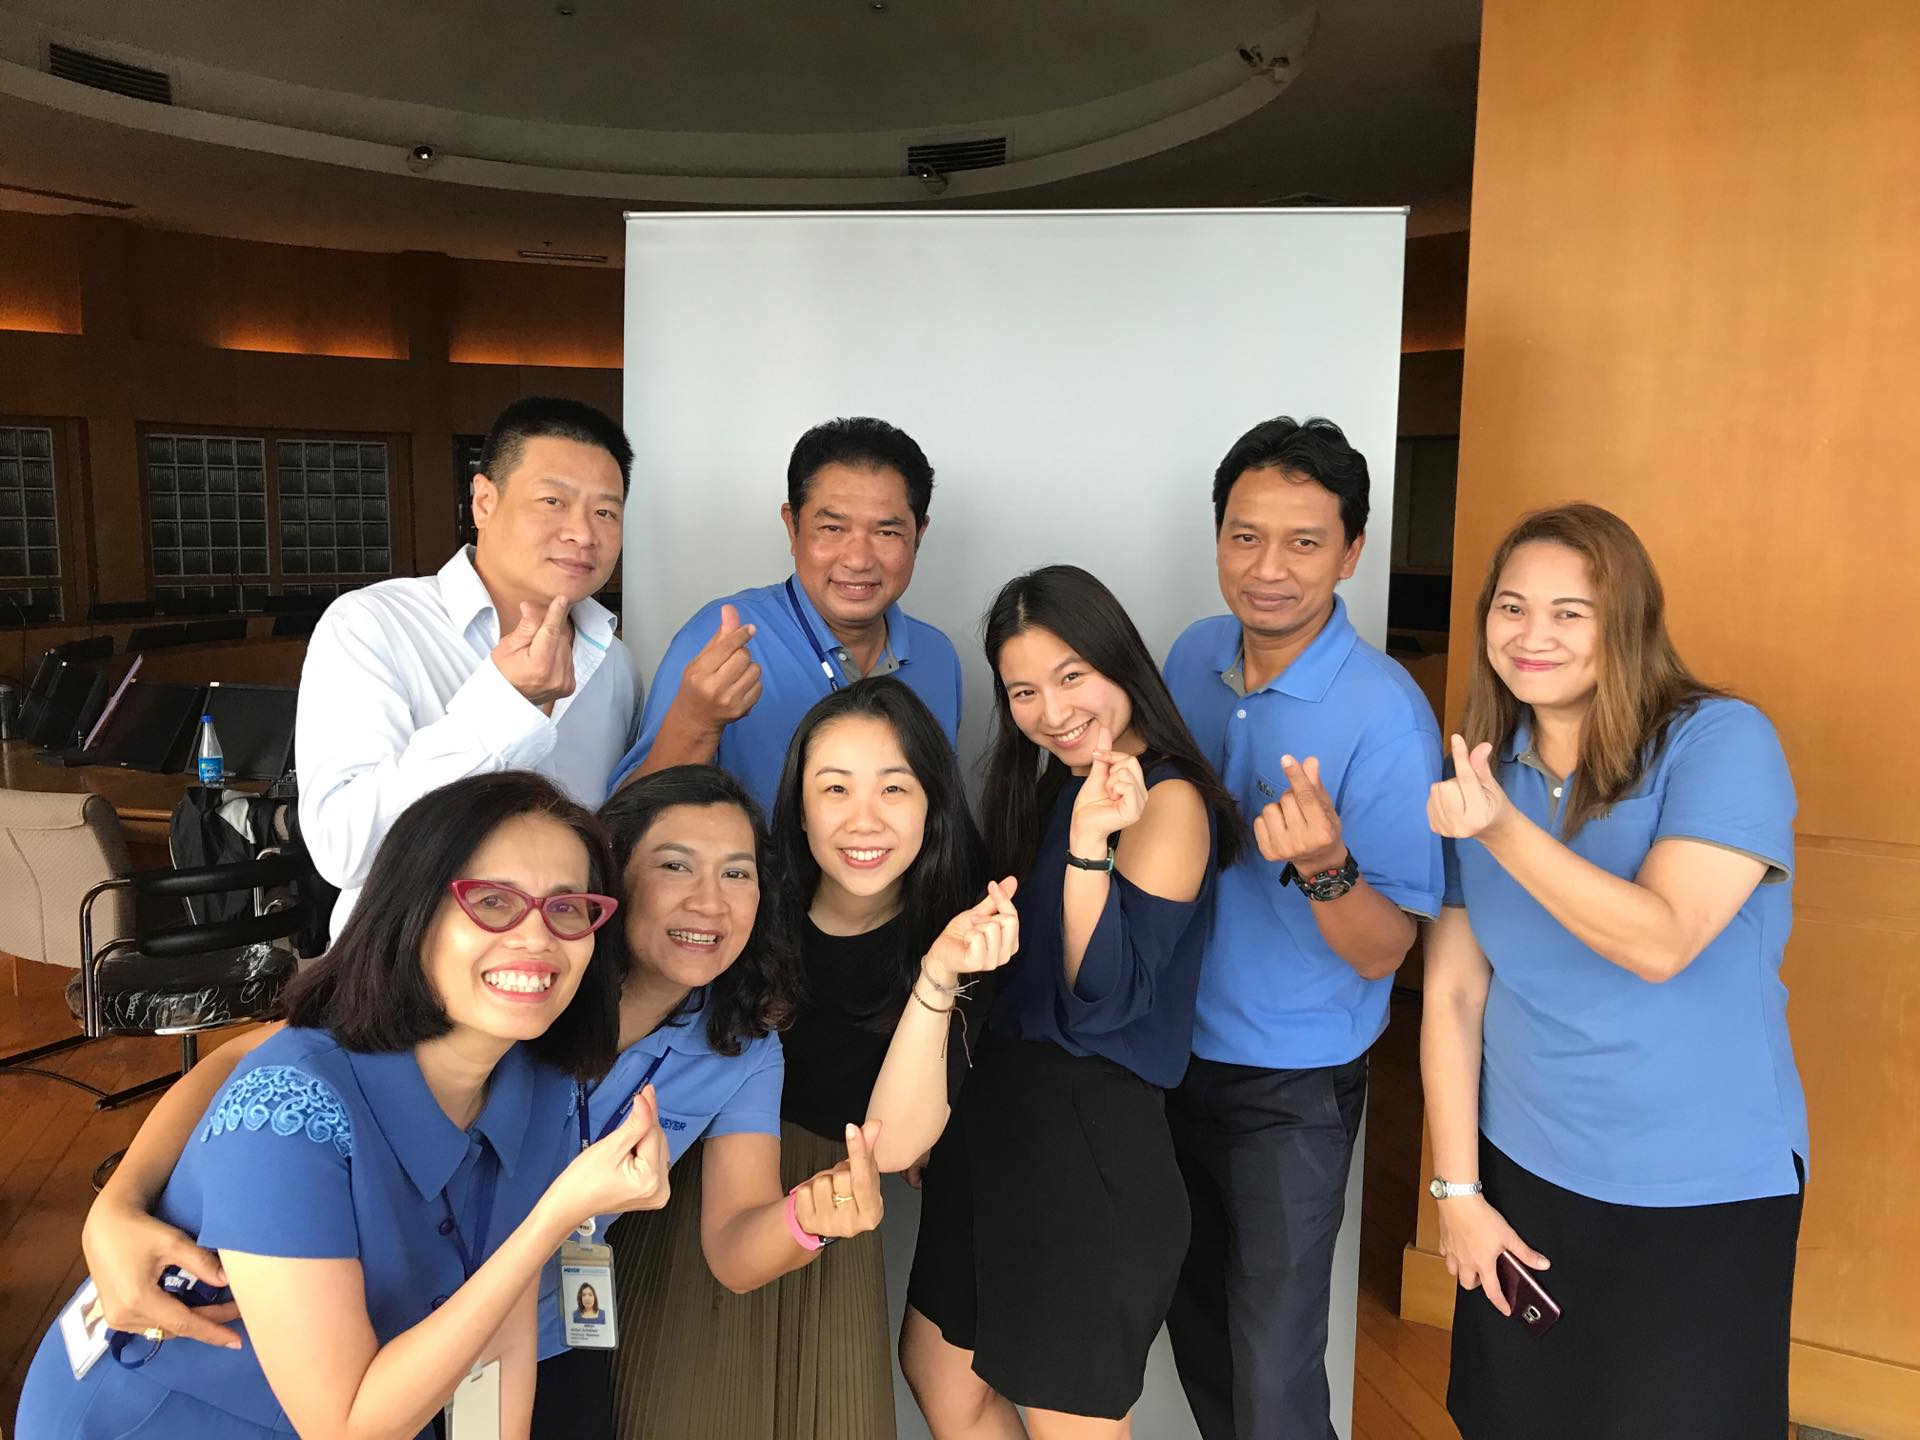 Say hello to our sweet co-workers from Thailand